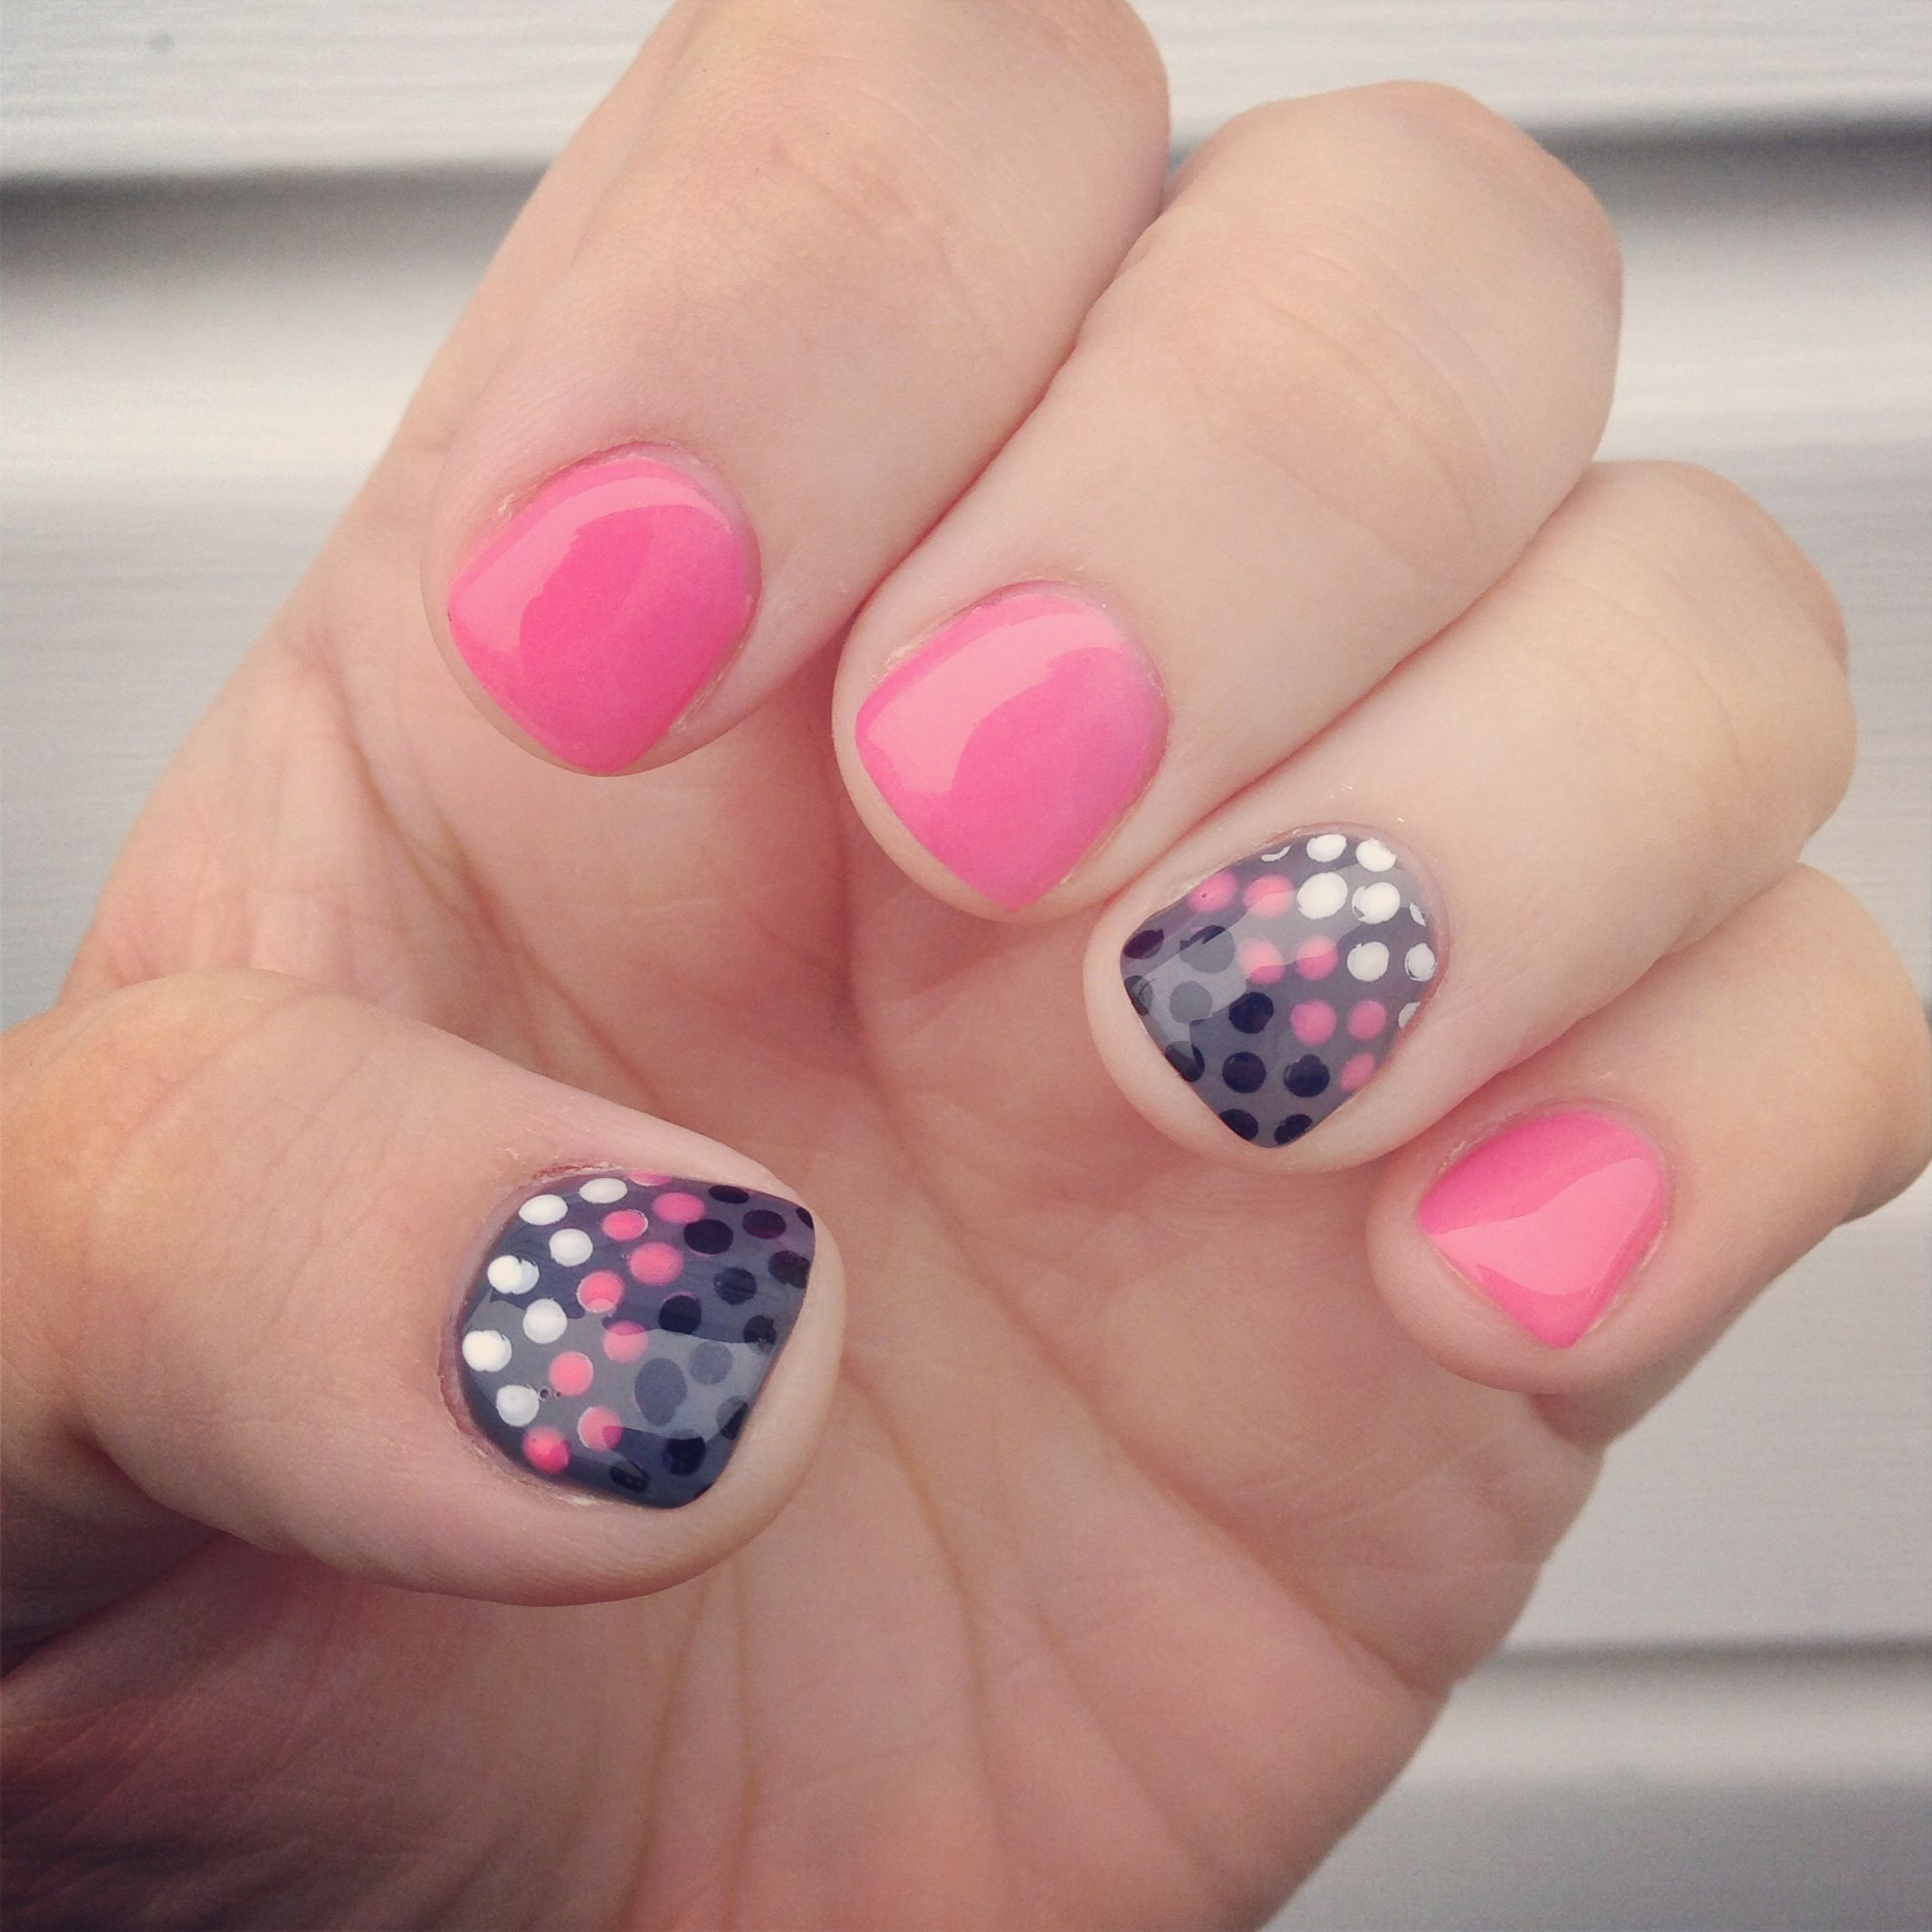 Pink and grey polka dots gel manicure gel nail ideas pinterest